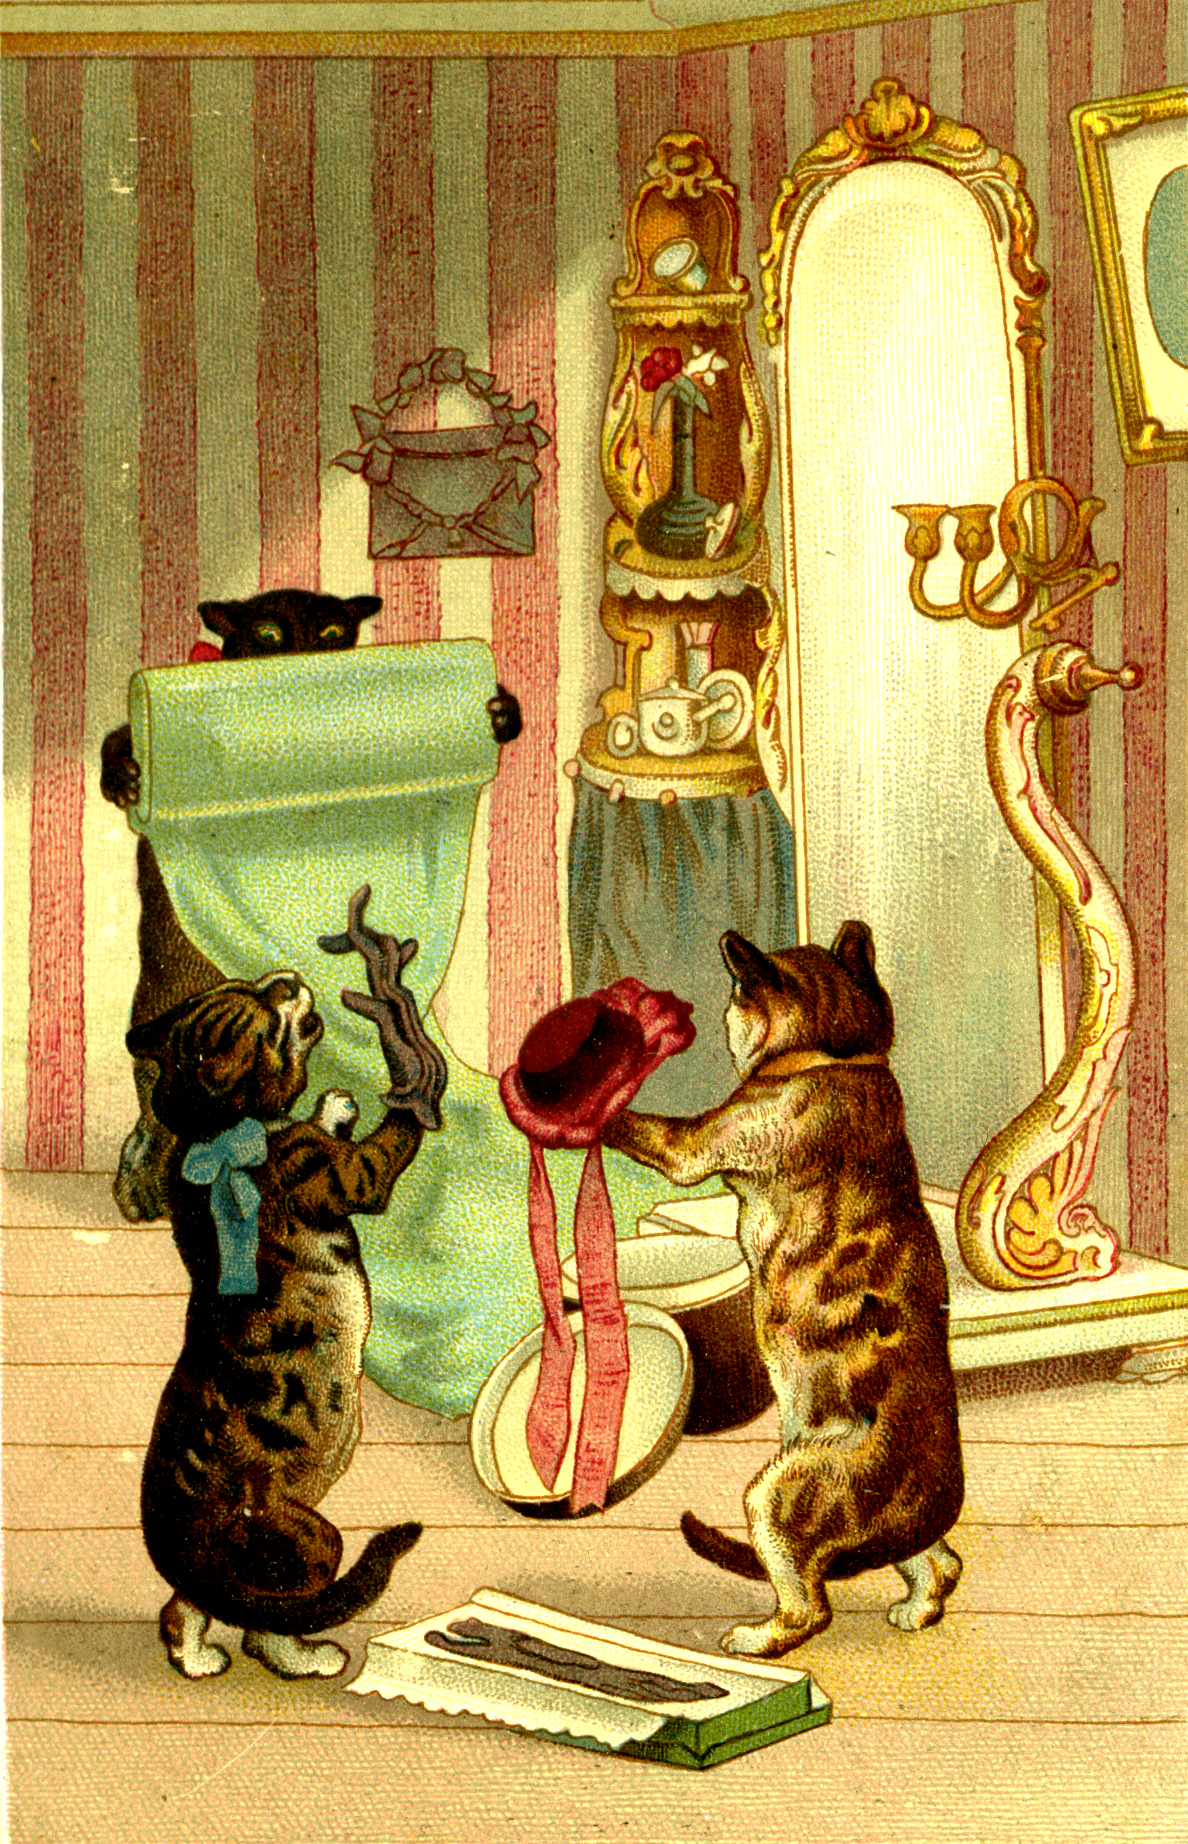 http://archivalart.com/Victorian_Kitty_Cat_Graphic.jpg